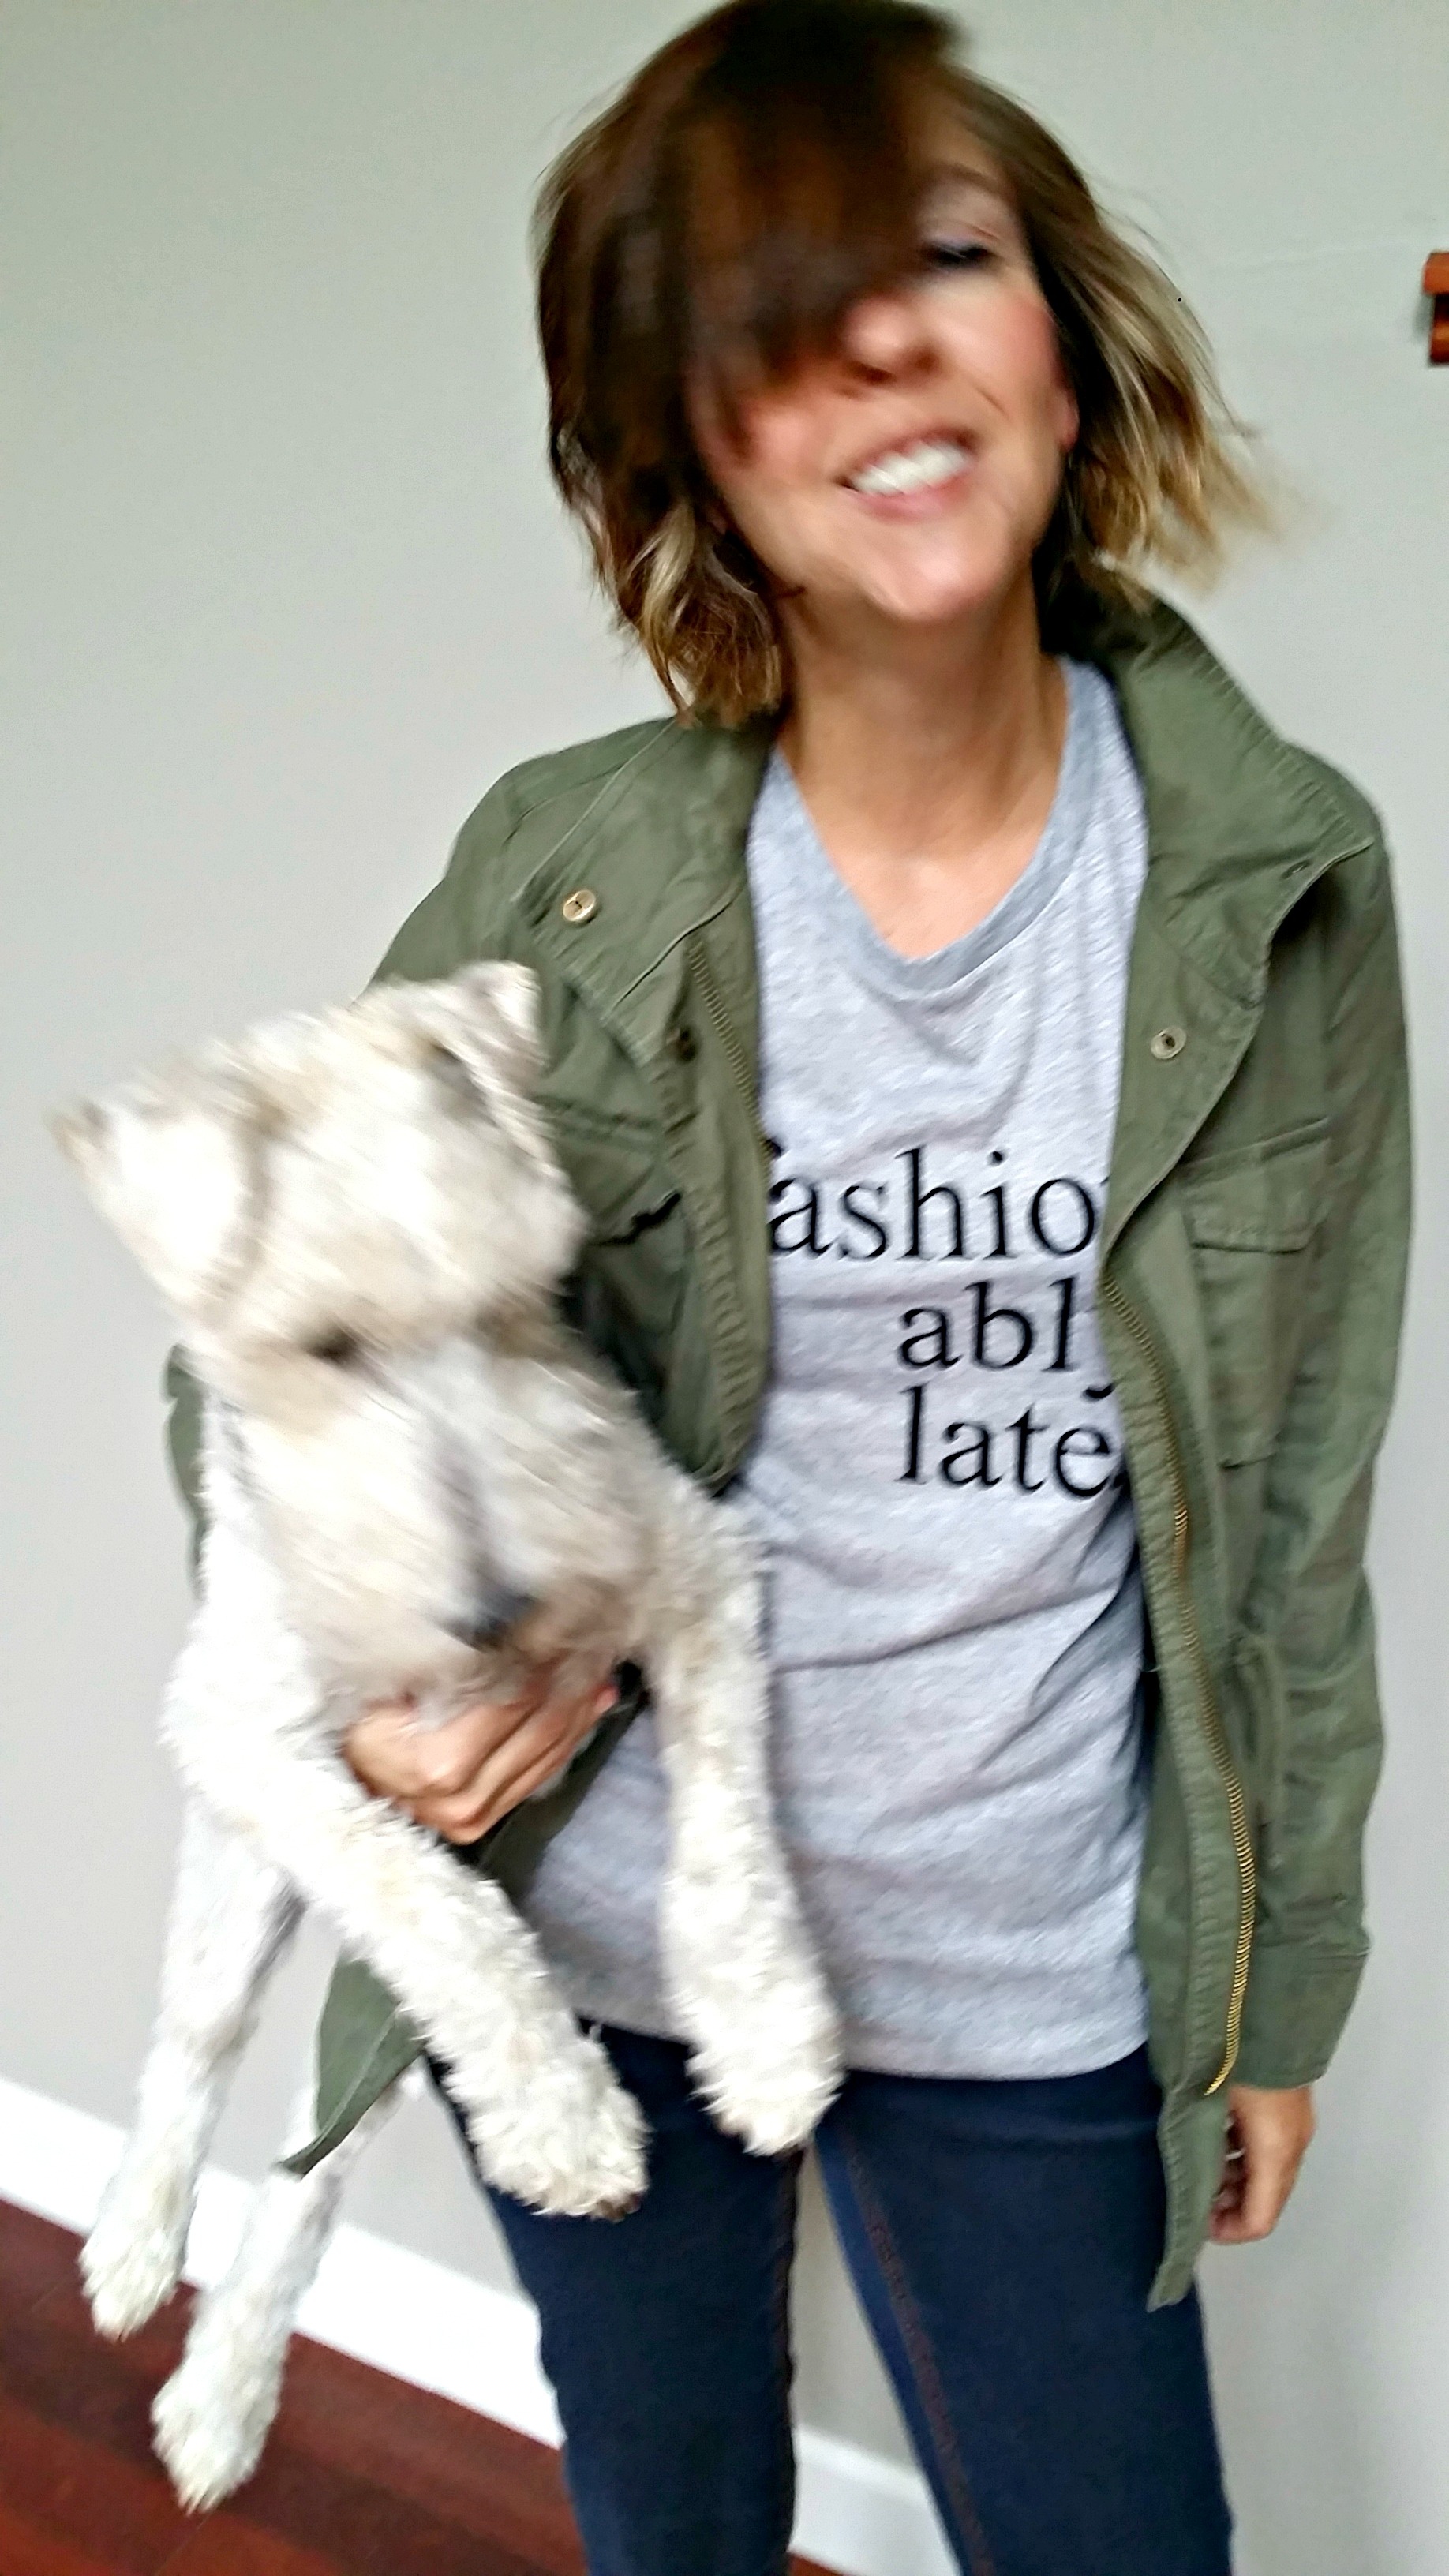 Use the Silhouette Portrait to design a fashionably late tee!